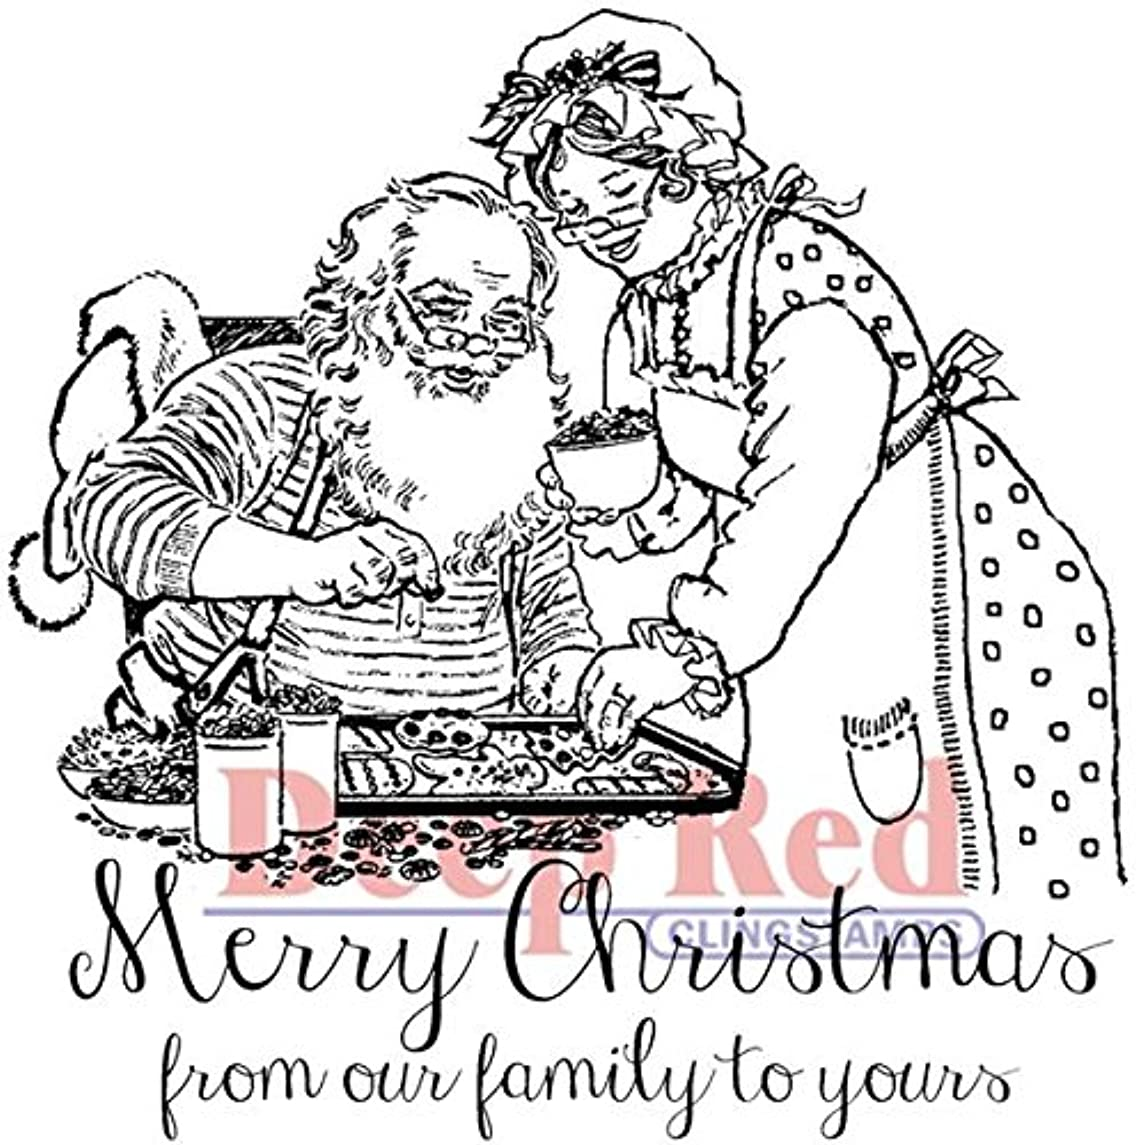 Deep Red Stamps Claus Family Christmas Rubber Stamp